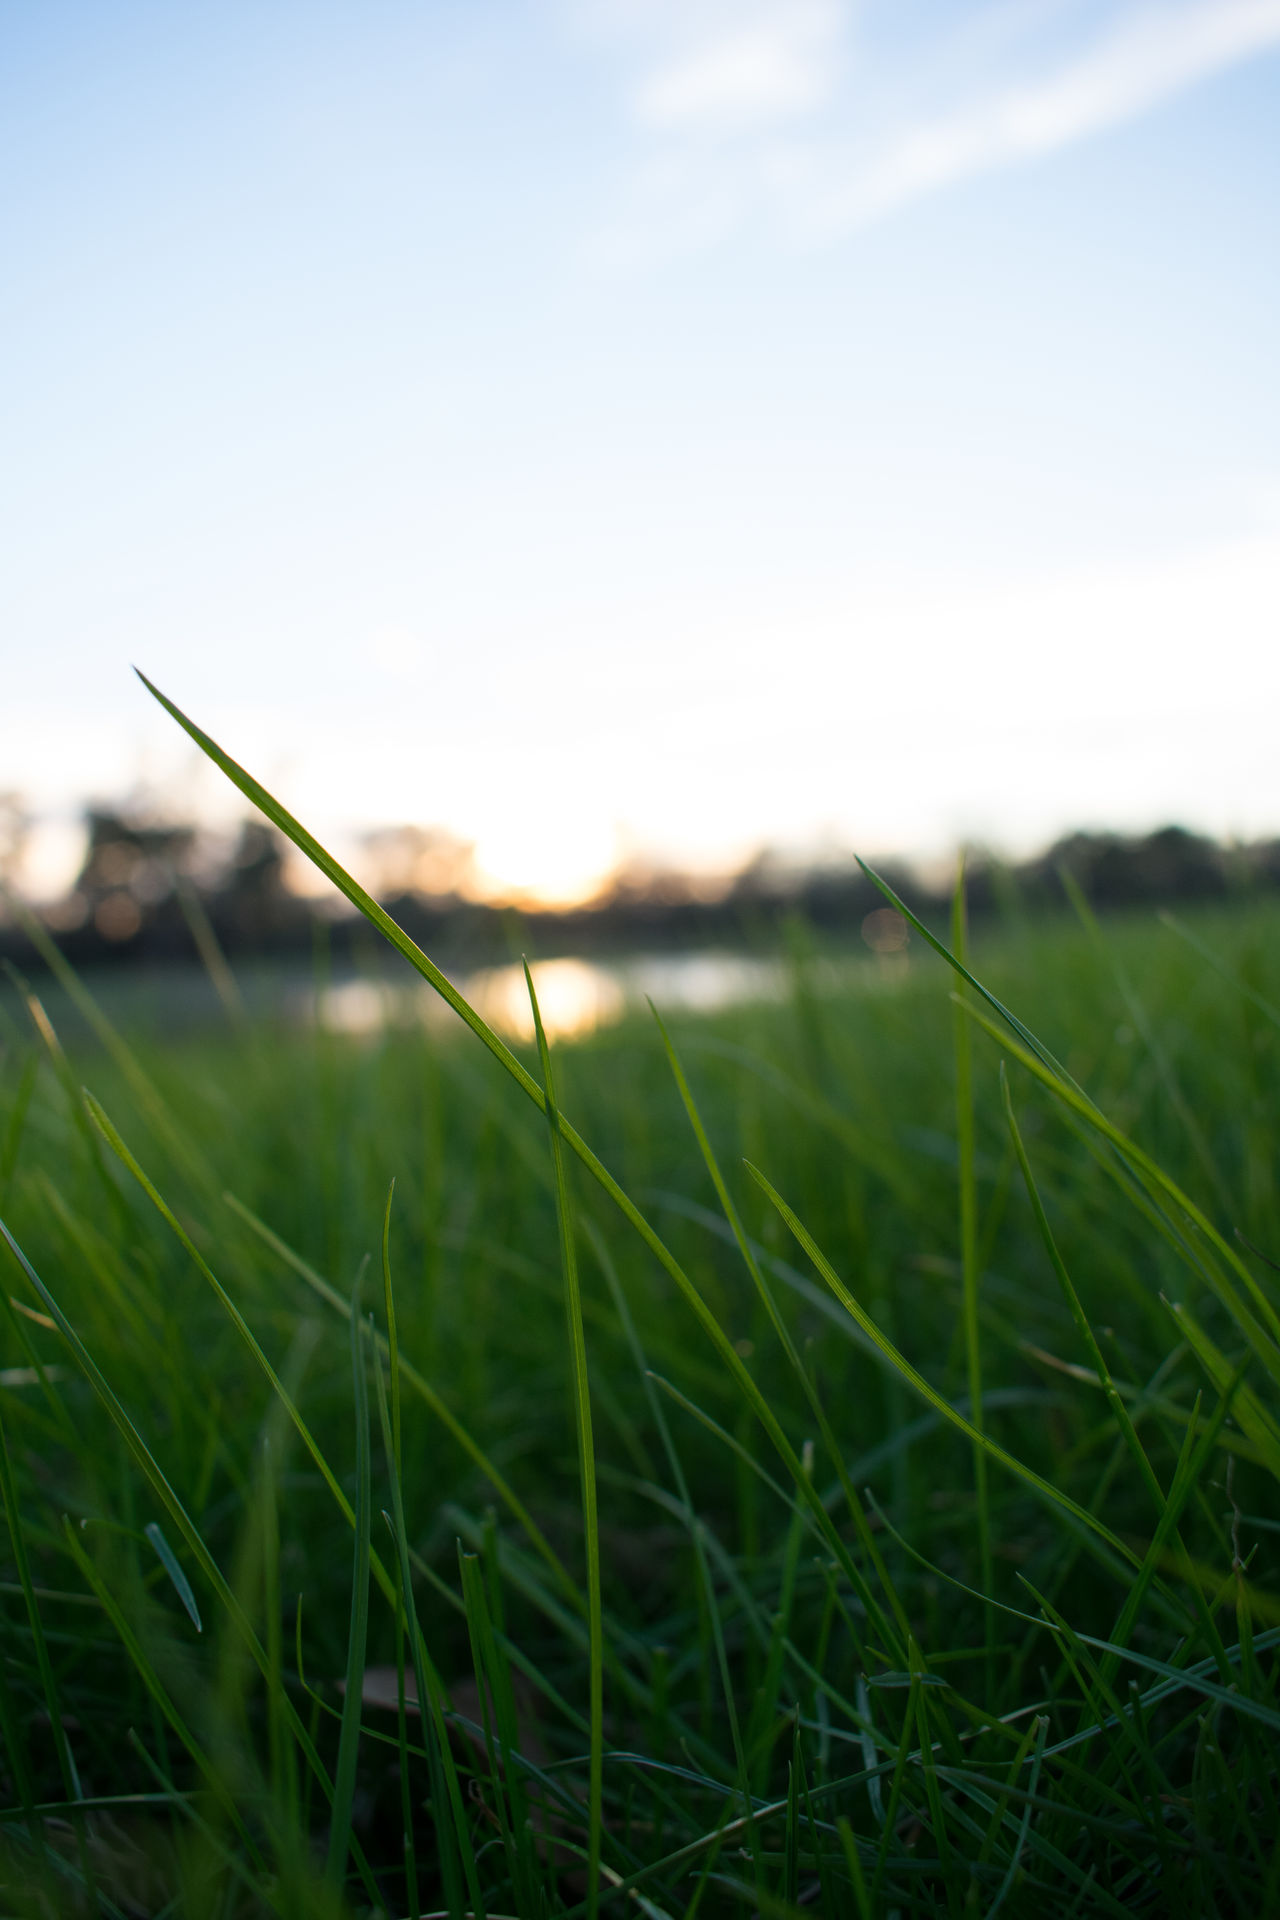 Beauty In Nature Blade Of Grass Close-up Day Field Golf Golf Course Grass Green - Golf Course Green Color Growth Landscape Nature No People Outdoors Sky Sunlight Timothy Grass